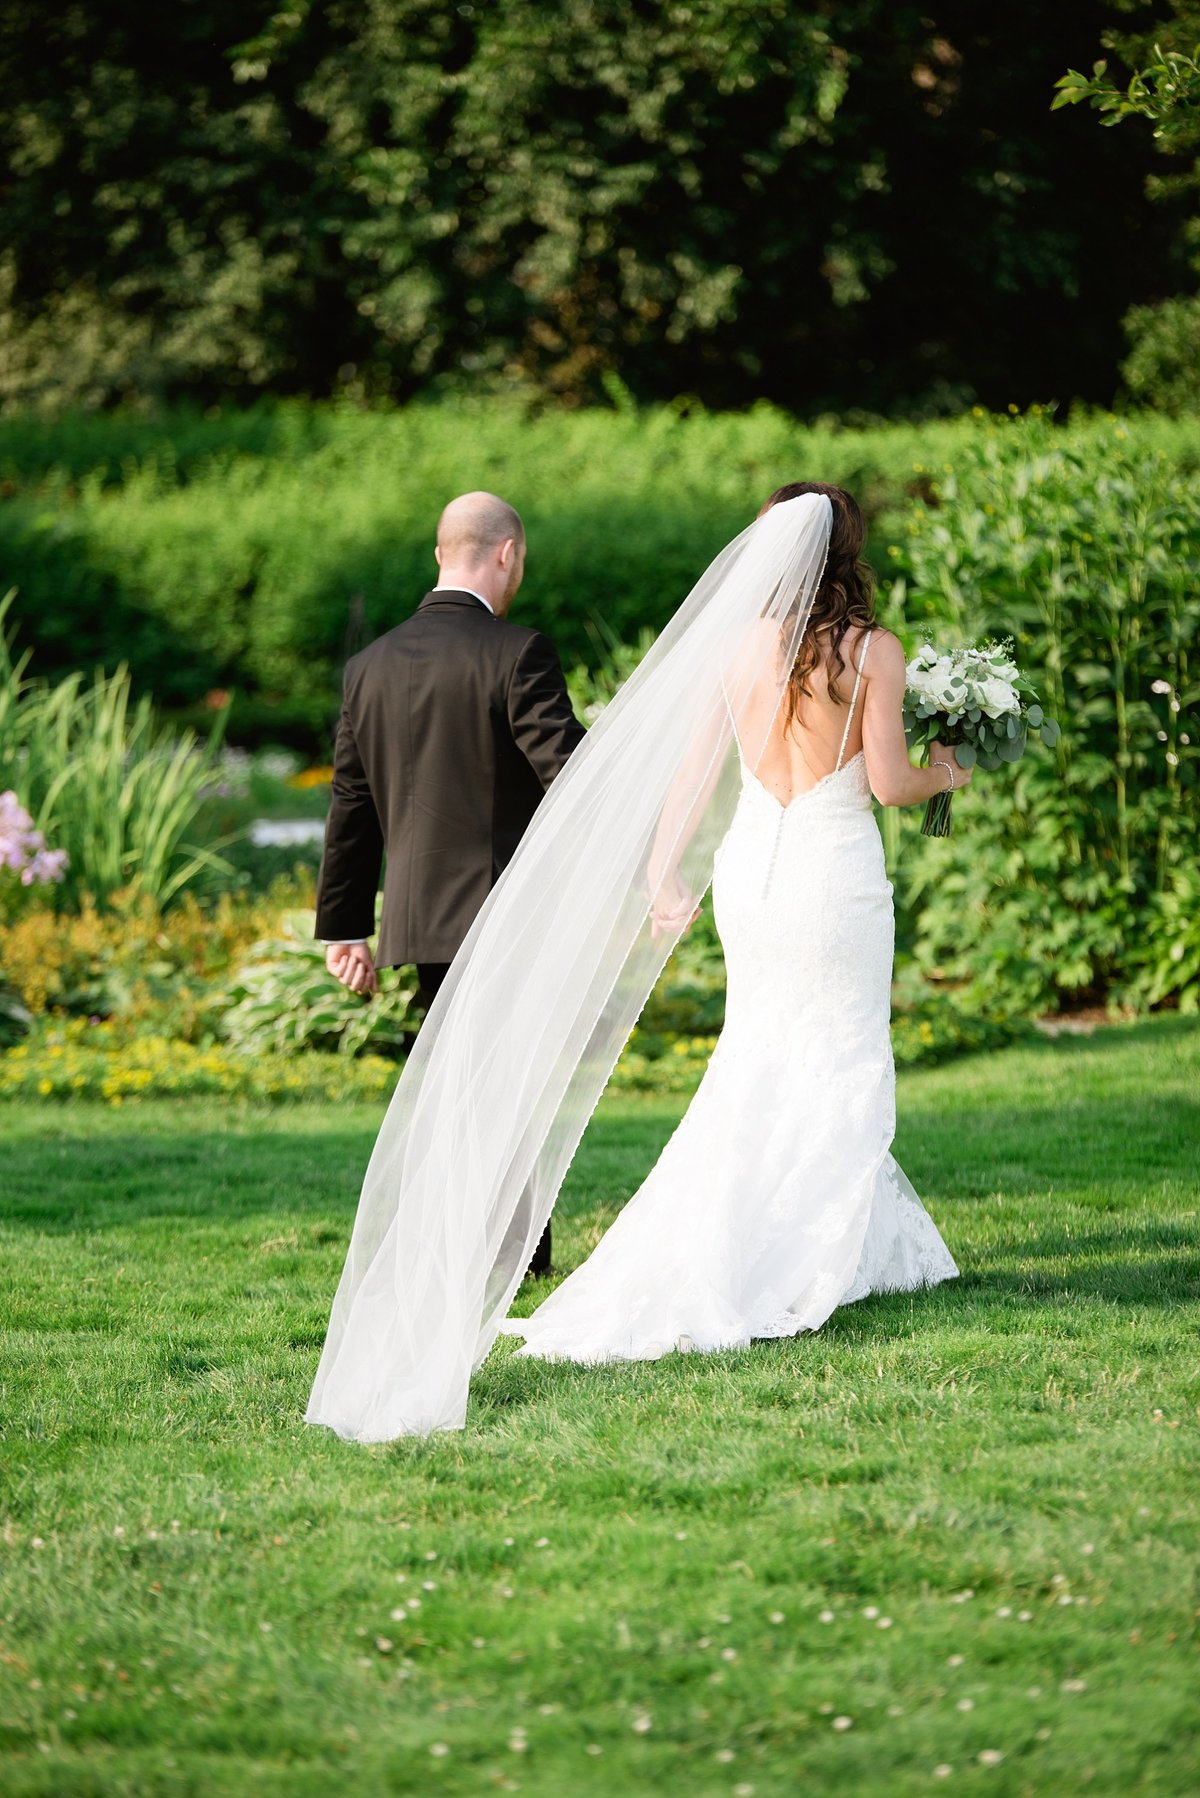 Shuster-Wedding-Grosse-Pointe-War-Memorial-Breanne-Rochelle-Photography96